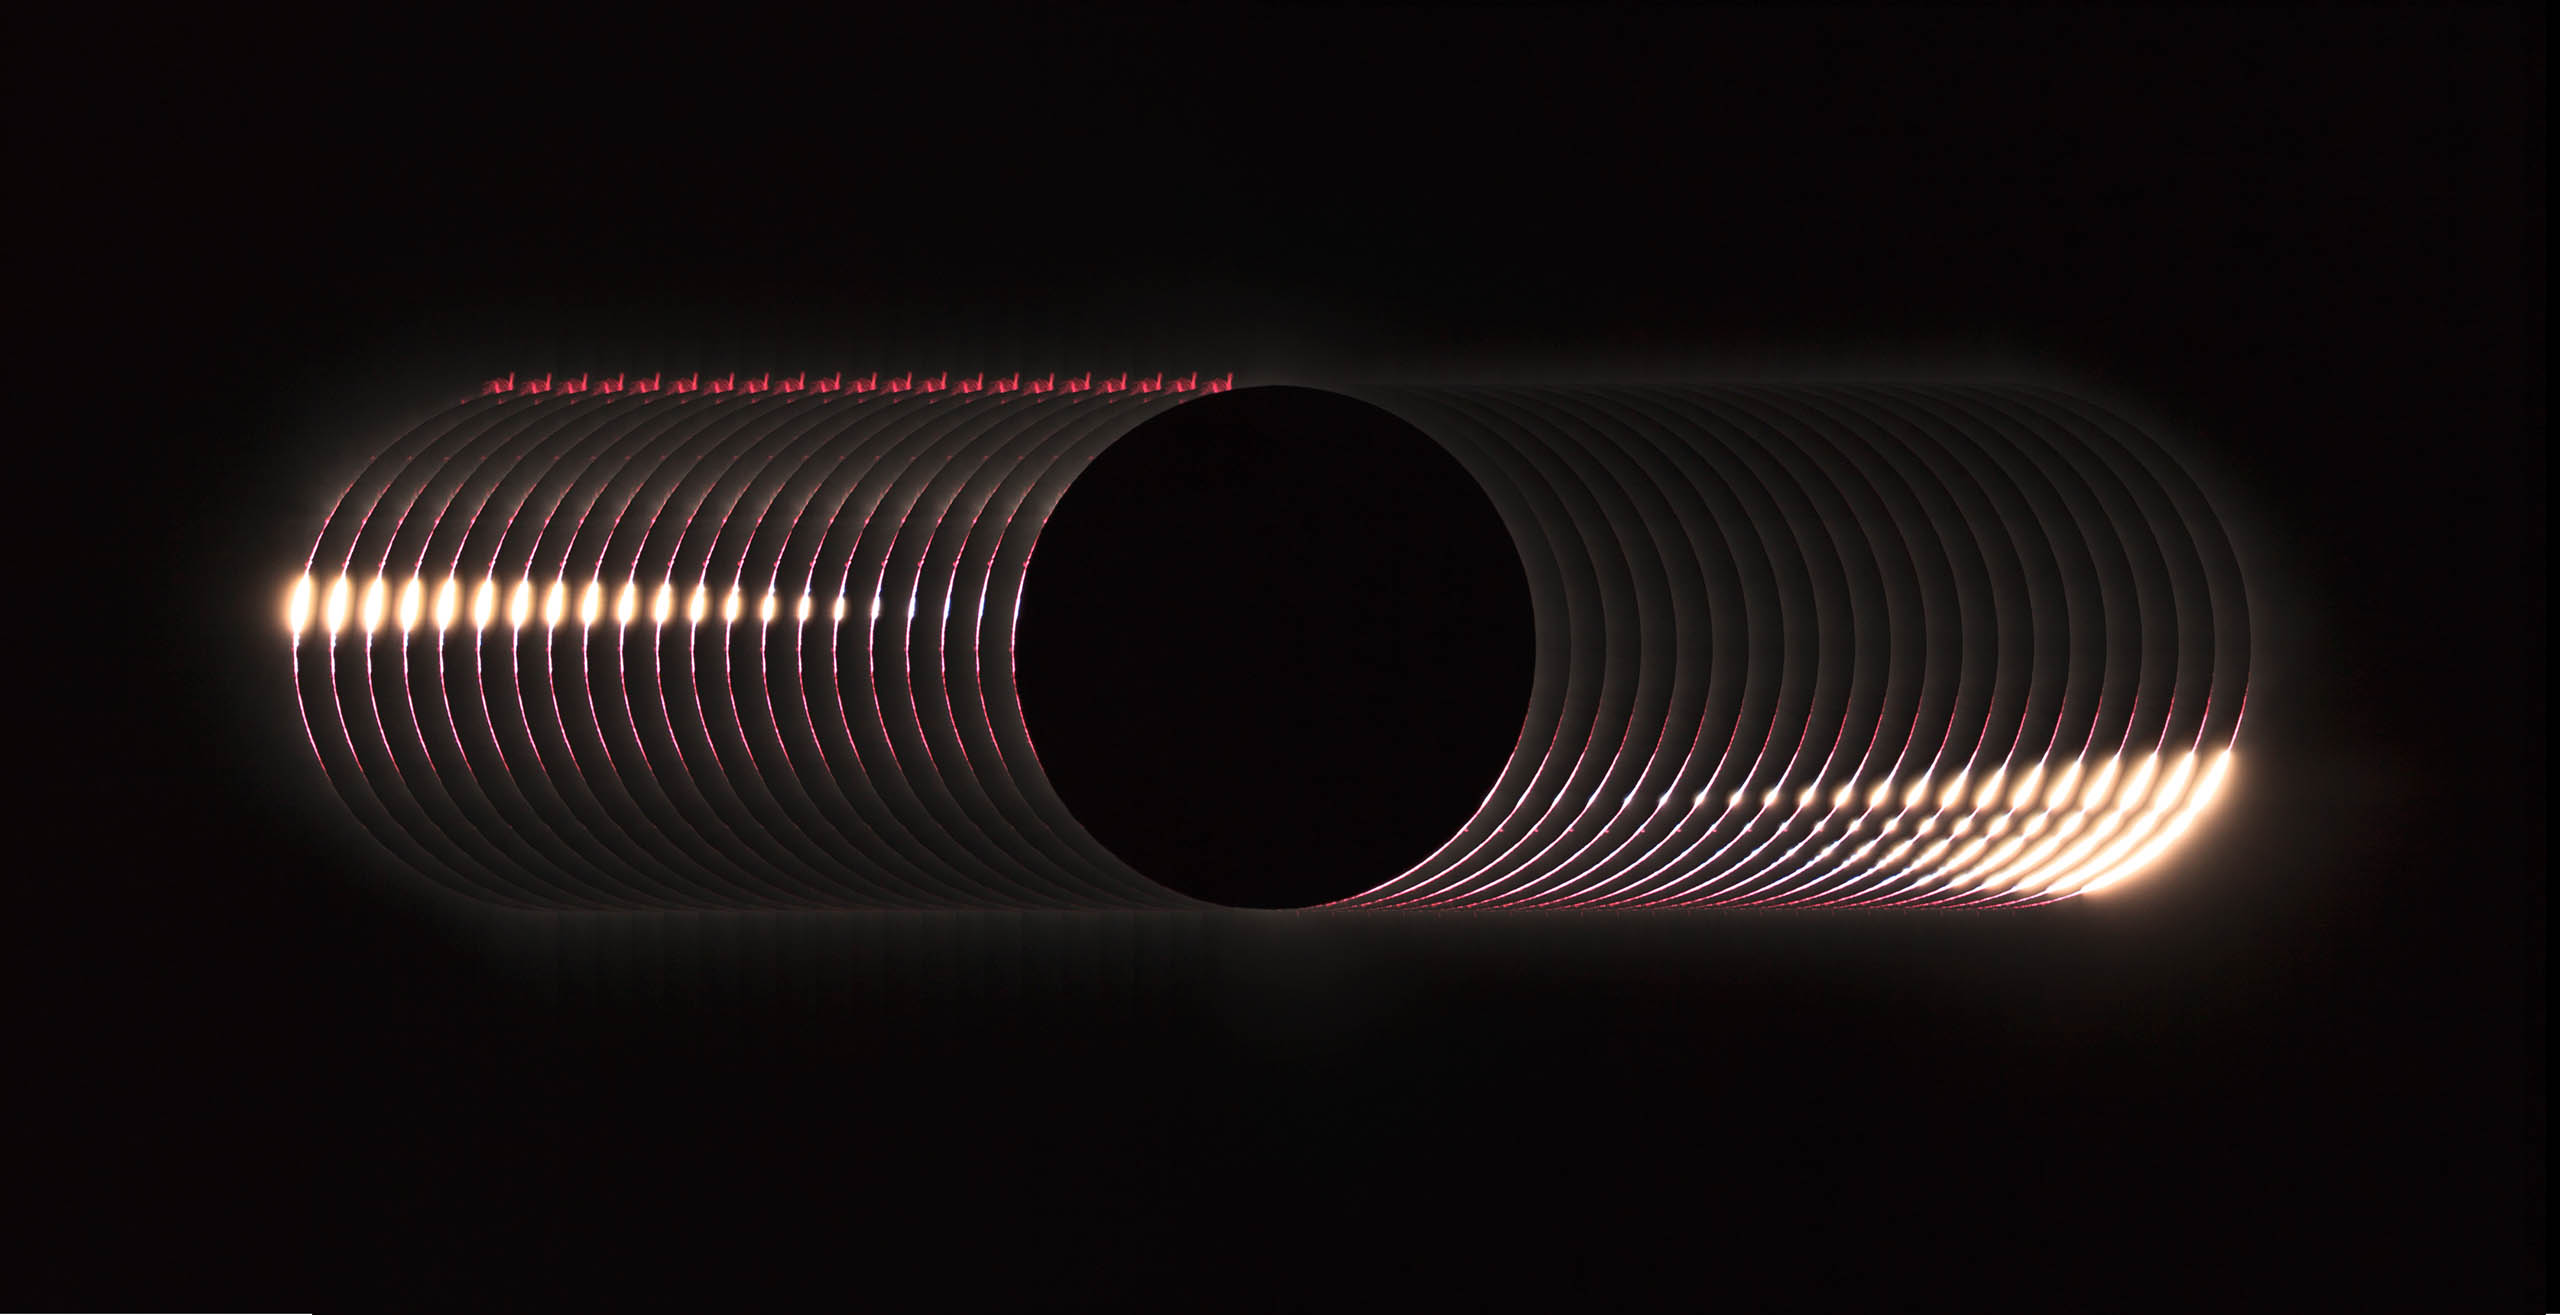 Our Sun and Overall Winner: The Baily's beads effect is a feature of total solar eclipses. As the moon  grazes  by the Sun during a solar eclipse, the rugged lunar topography allows beads of sunlight to shine through in some places, and not in others.  I took a series of photos of the total solar eclipse of 2016, in Luwuk Indonesia, and stacked them to show the baily's beads' dramatic changes,  writes Photographer Yu Jun.